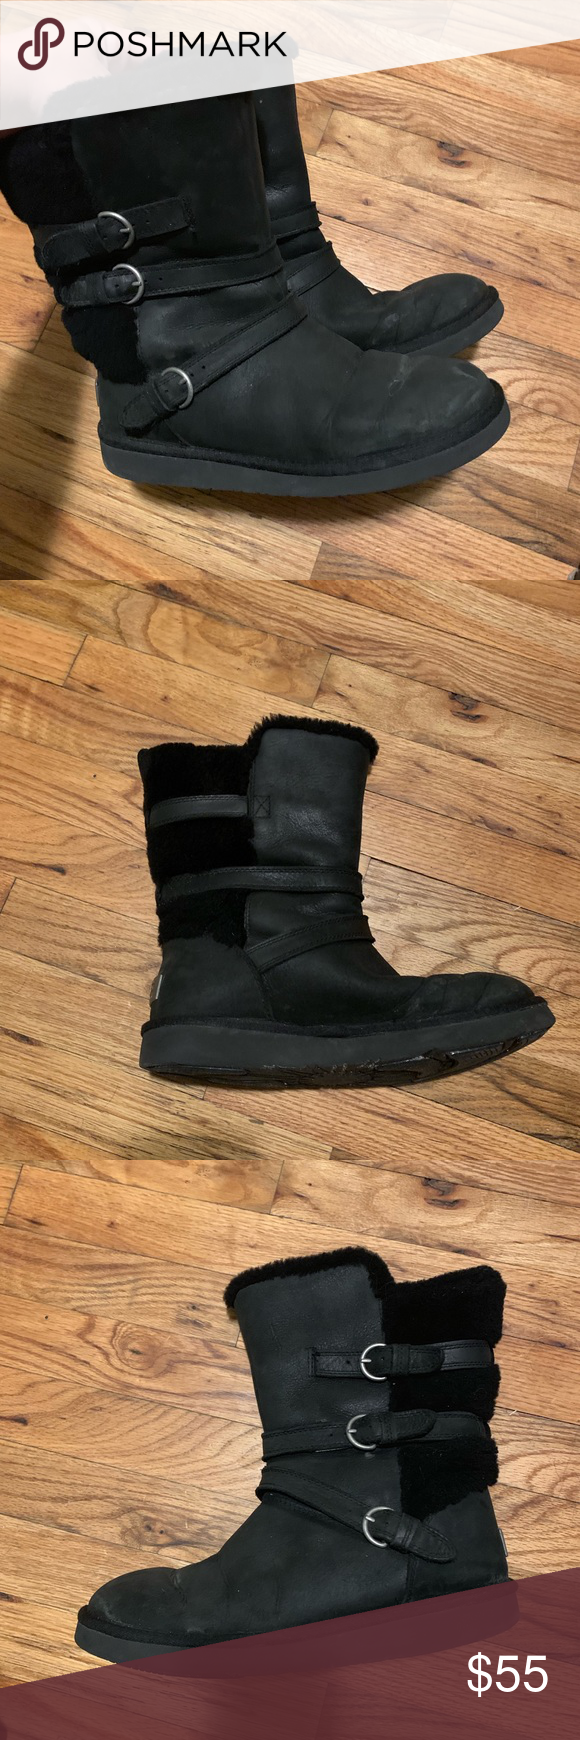 Black Ugg boots with fur trim and